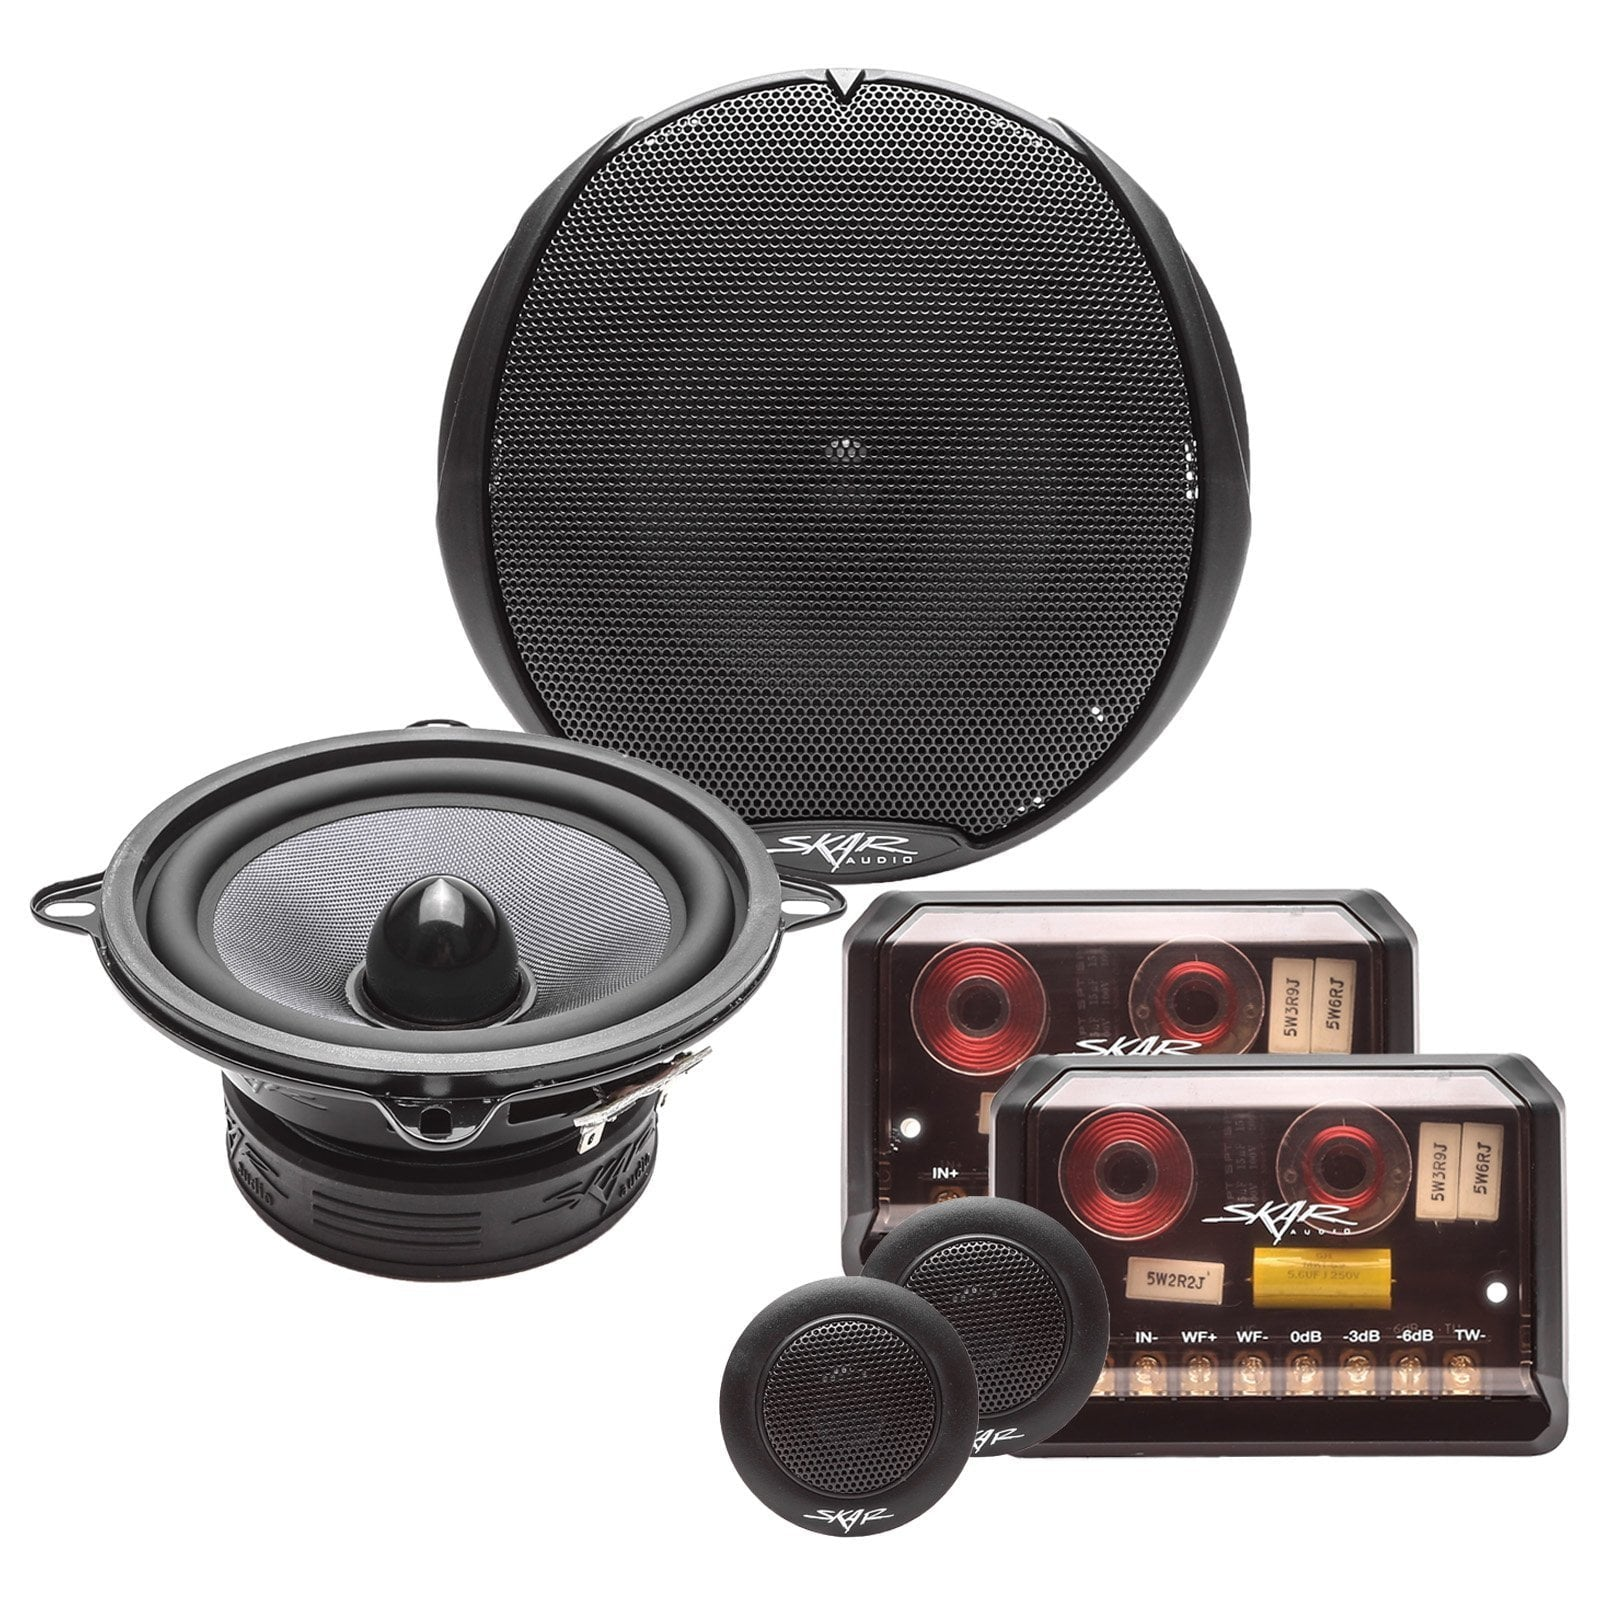 Skar Audio TX525C 5.25-inch 160 Watt Max Power Component Speaker System - Complete System View